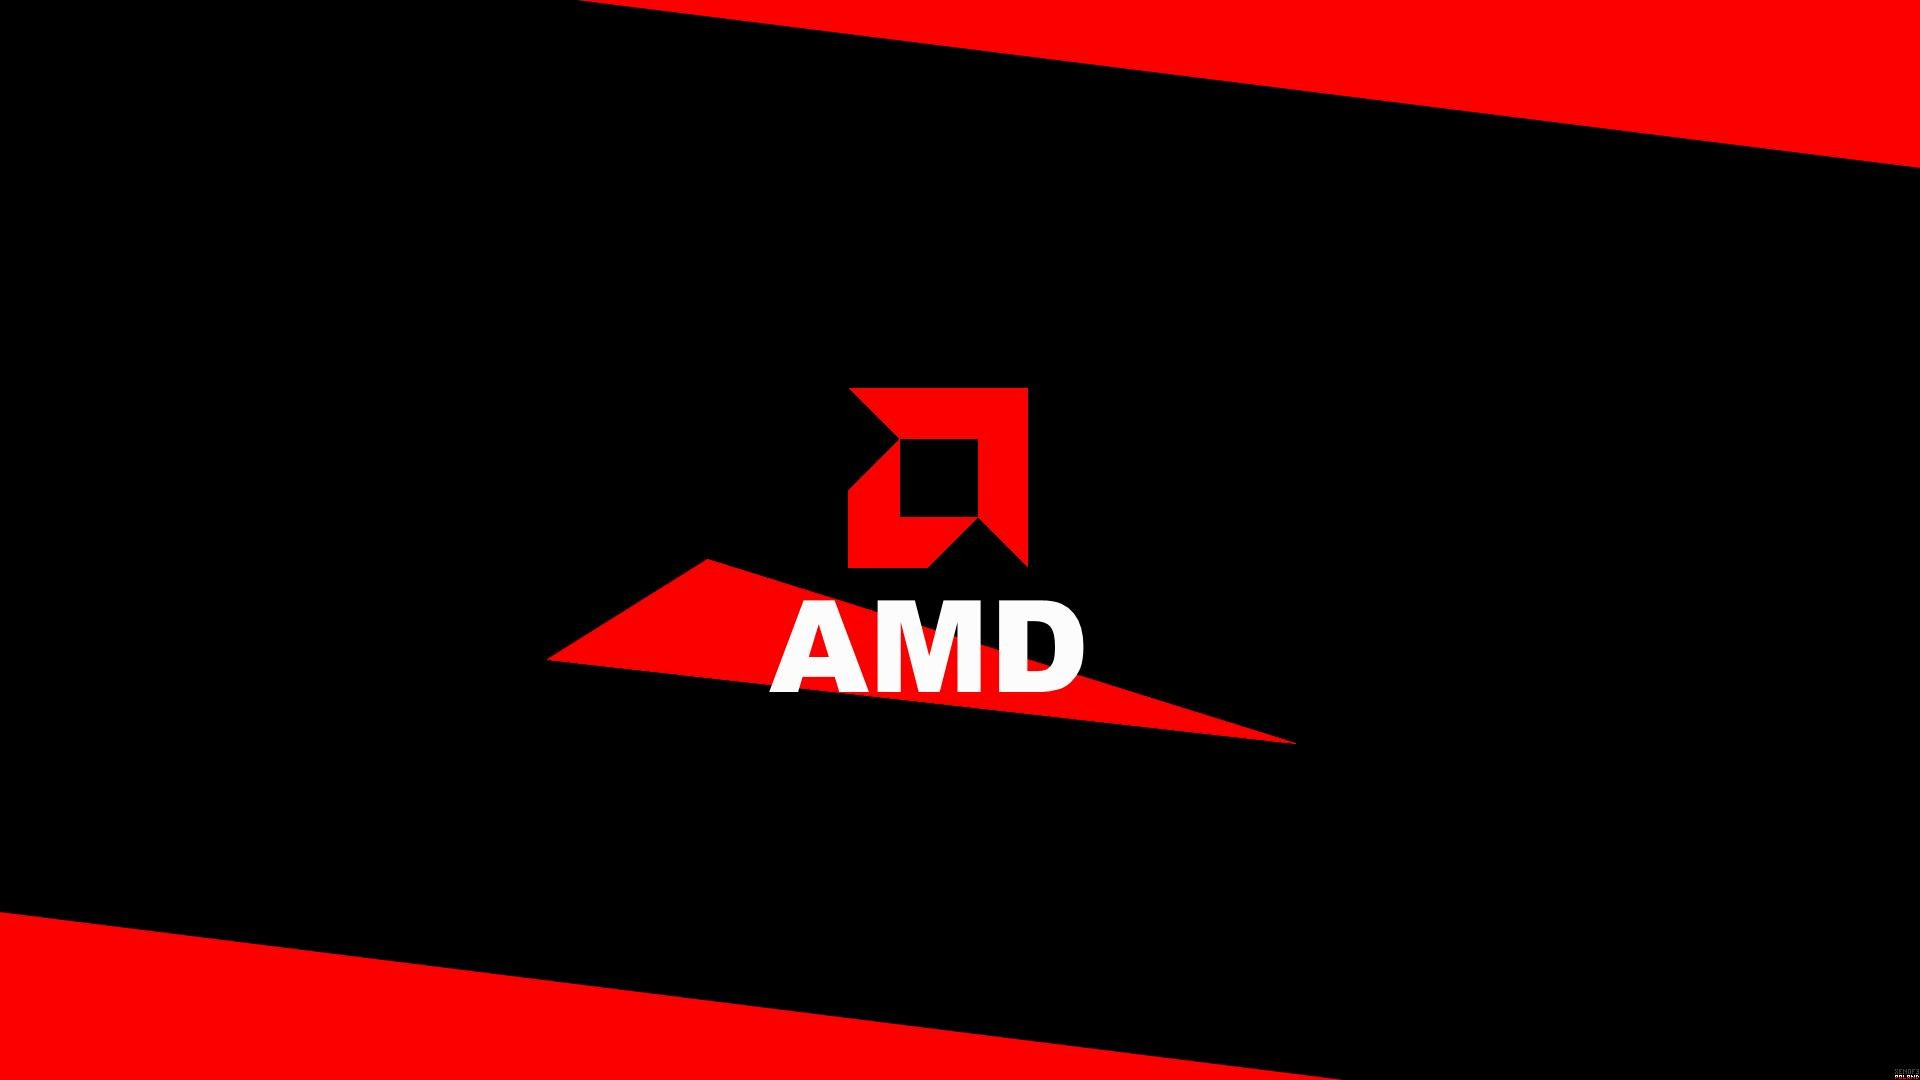 amd radeon wallpapers hd - photo #6